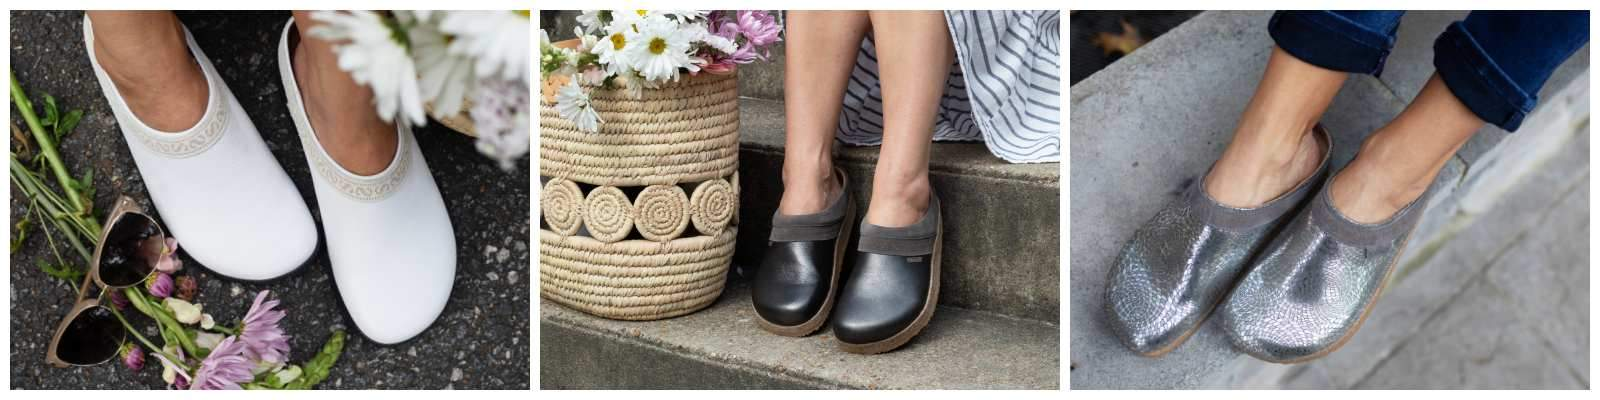 Why Clogs Are the Perfect Summer Shoes